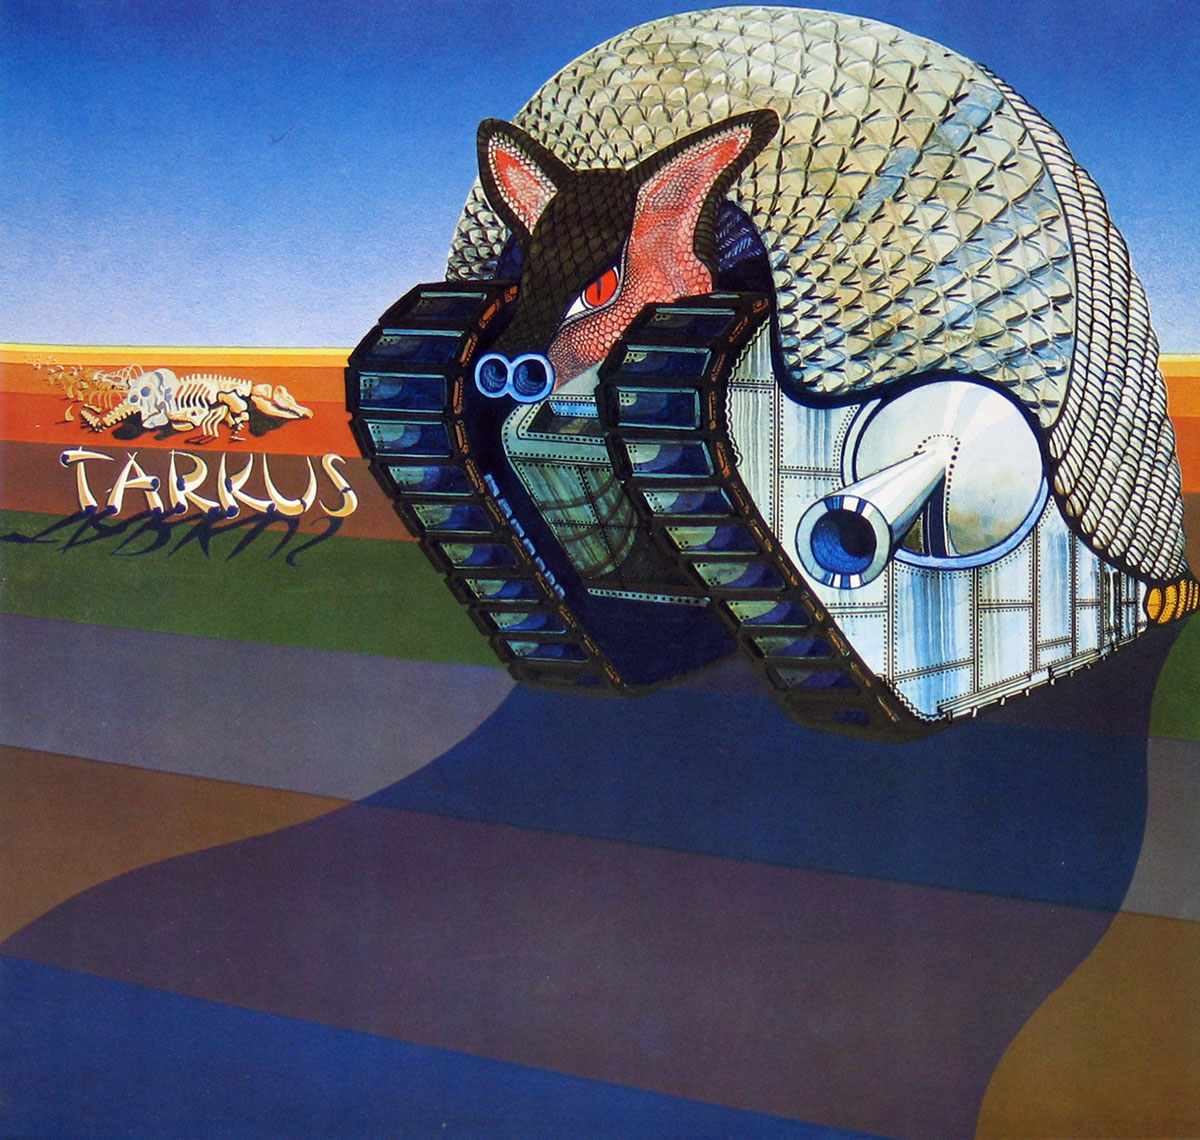 High Resolution Photo elp emerson lake palmer tarkus germany